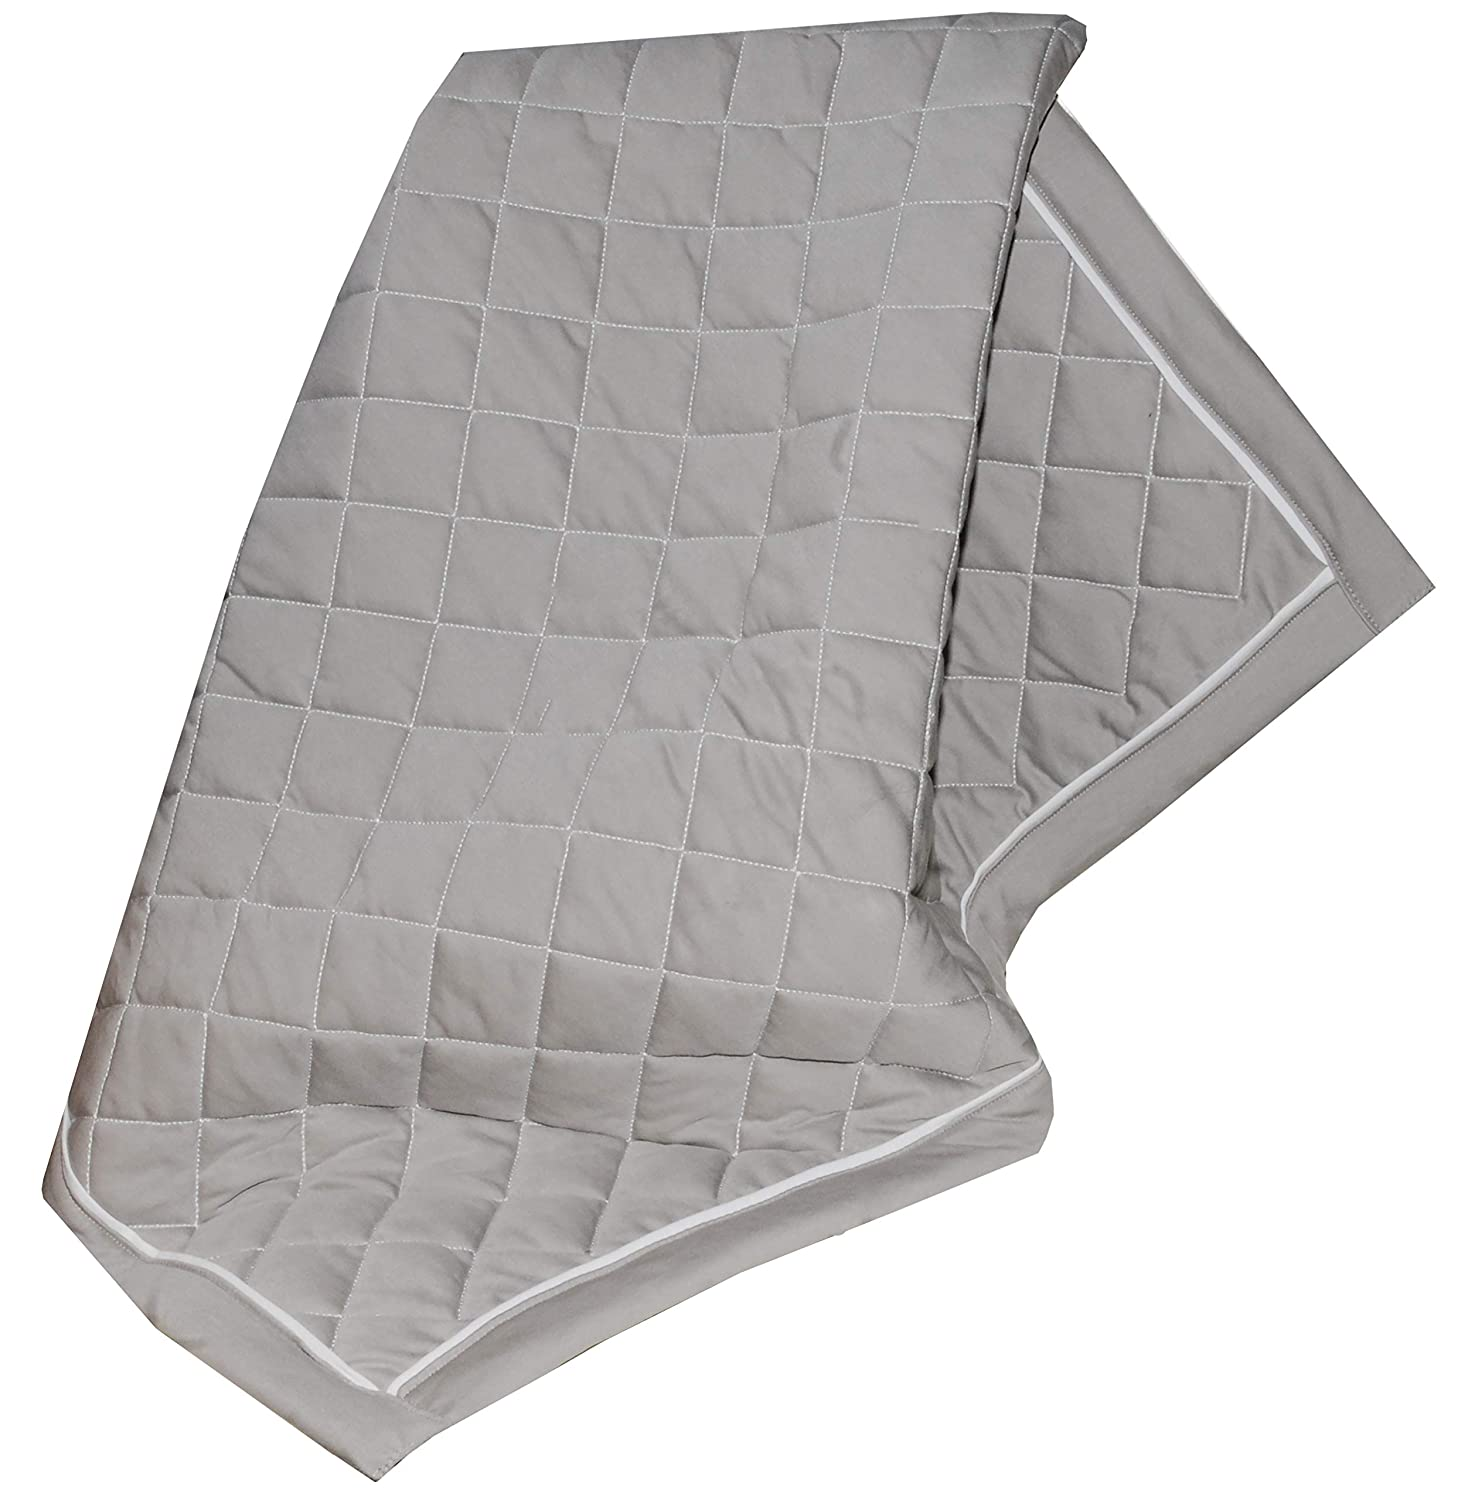 Fuzzies Quilted Thermal Baby Blanket for Boys & Girls | Doubled-Sided, Gray and White| Buttery Soft, Breathable Cotton Infant/Toddler Quilt Throw Blanket | Warm, Peaceful Sleeping in Crib – 36 x 36